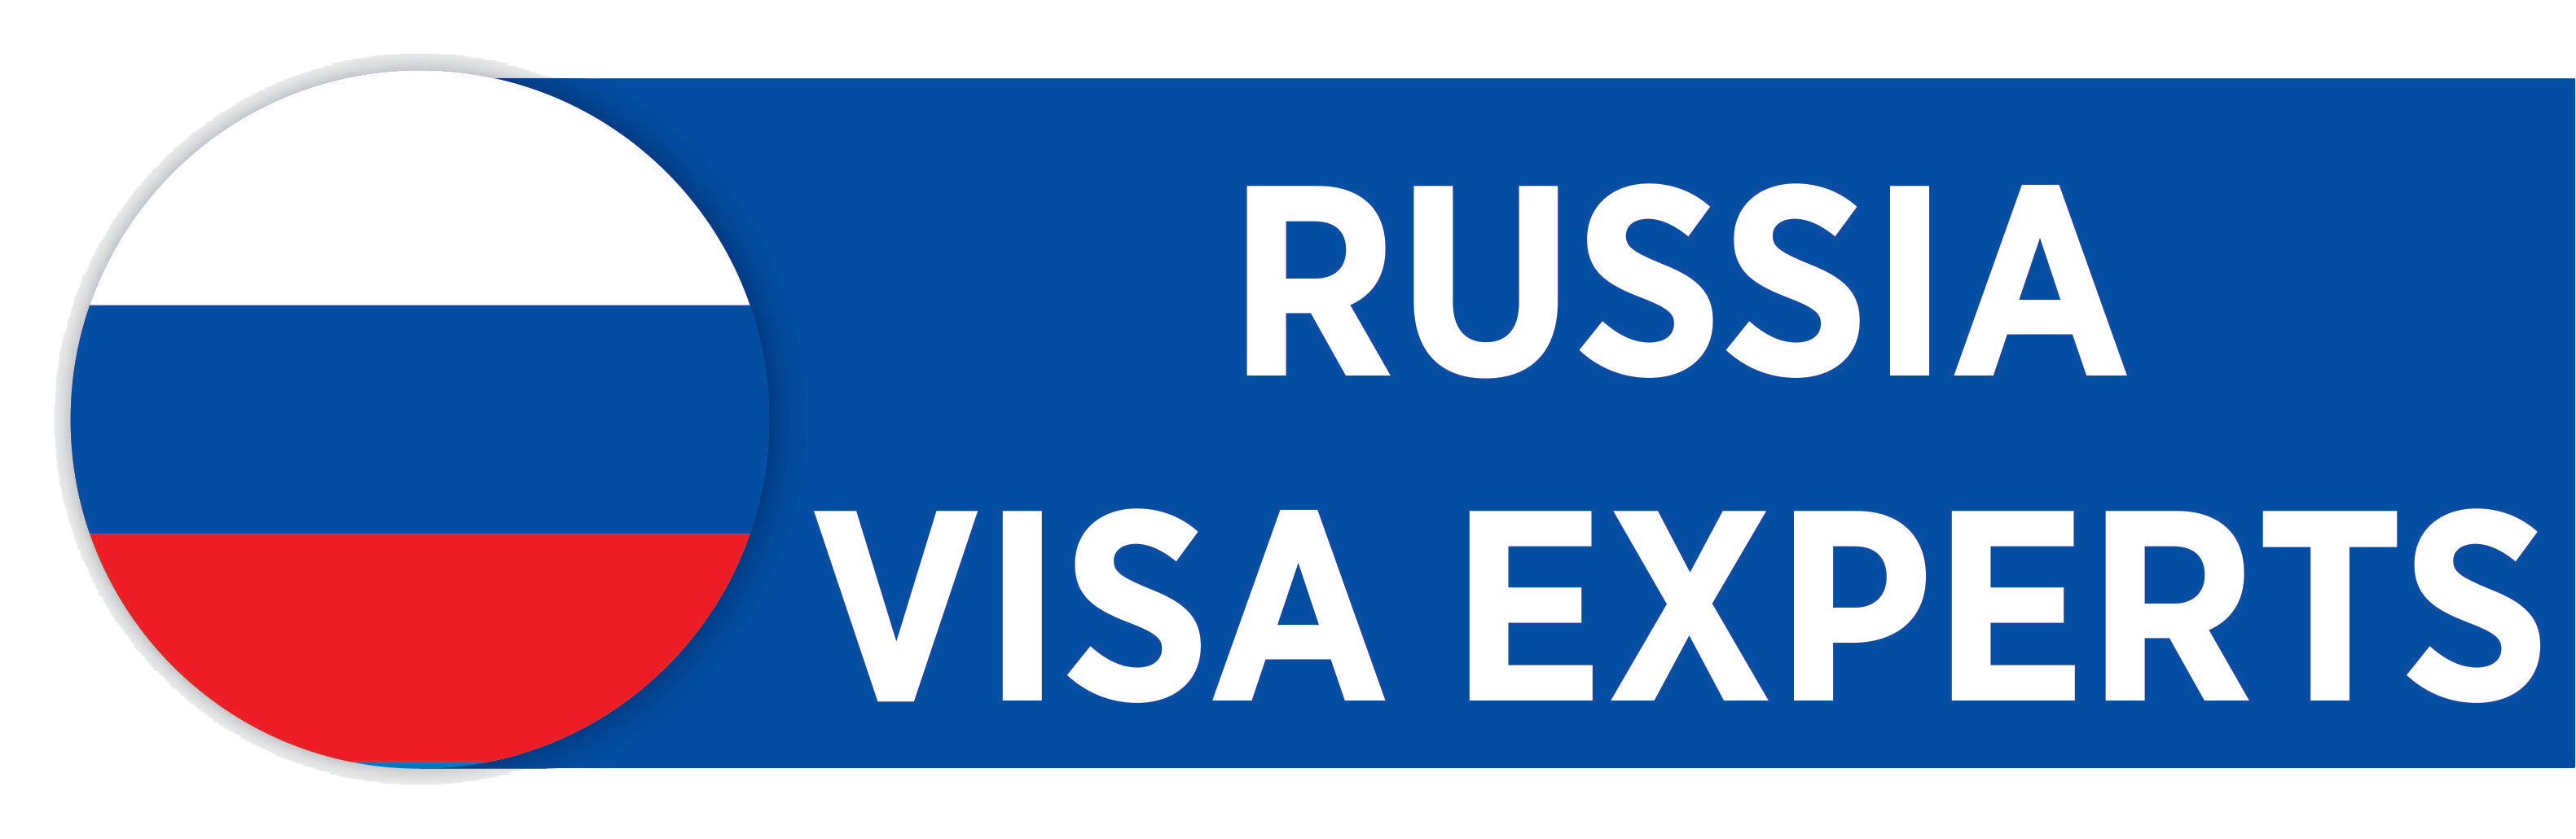 Russia visa Experts